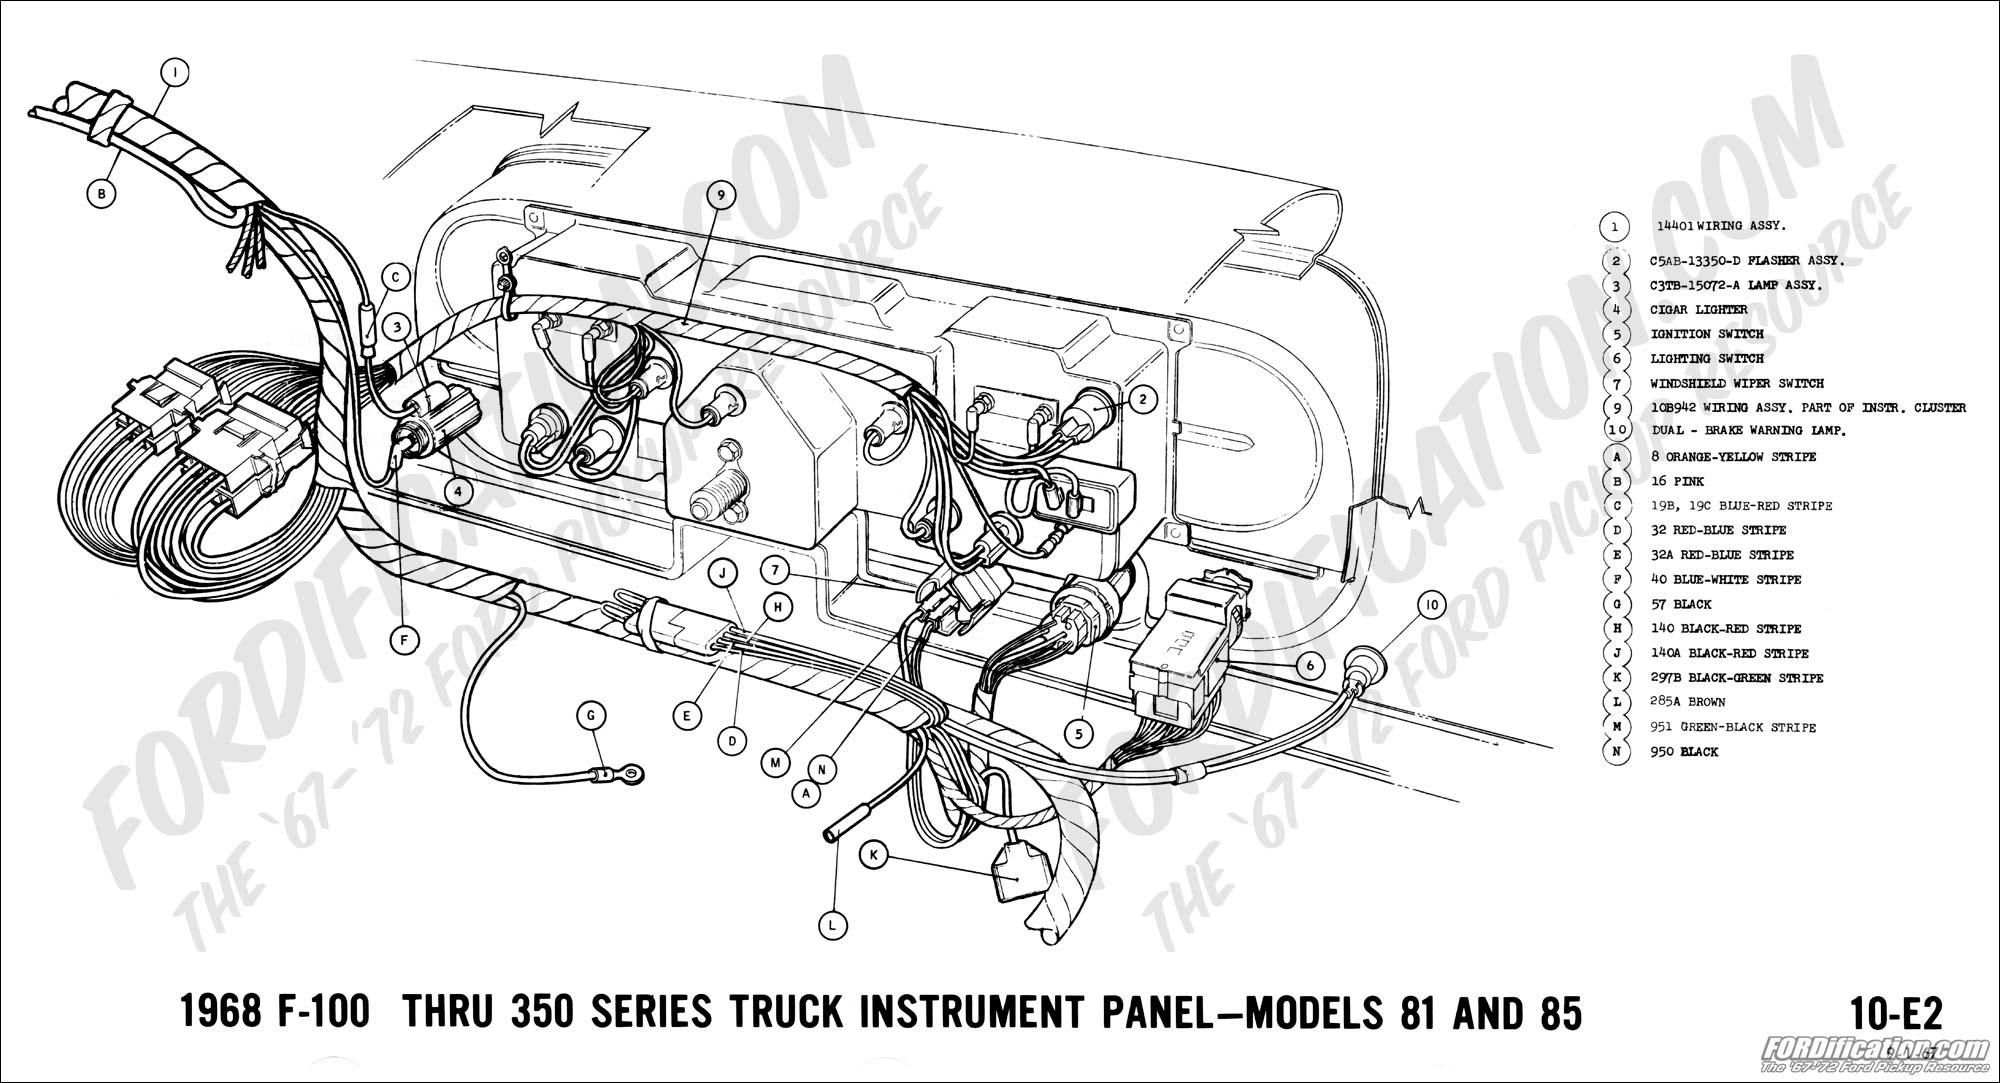 Trans Wiring Diagram 2007 Dodge 350 - Data Wiring Diagrams •